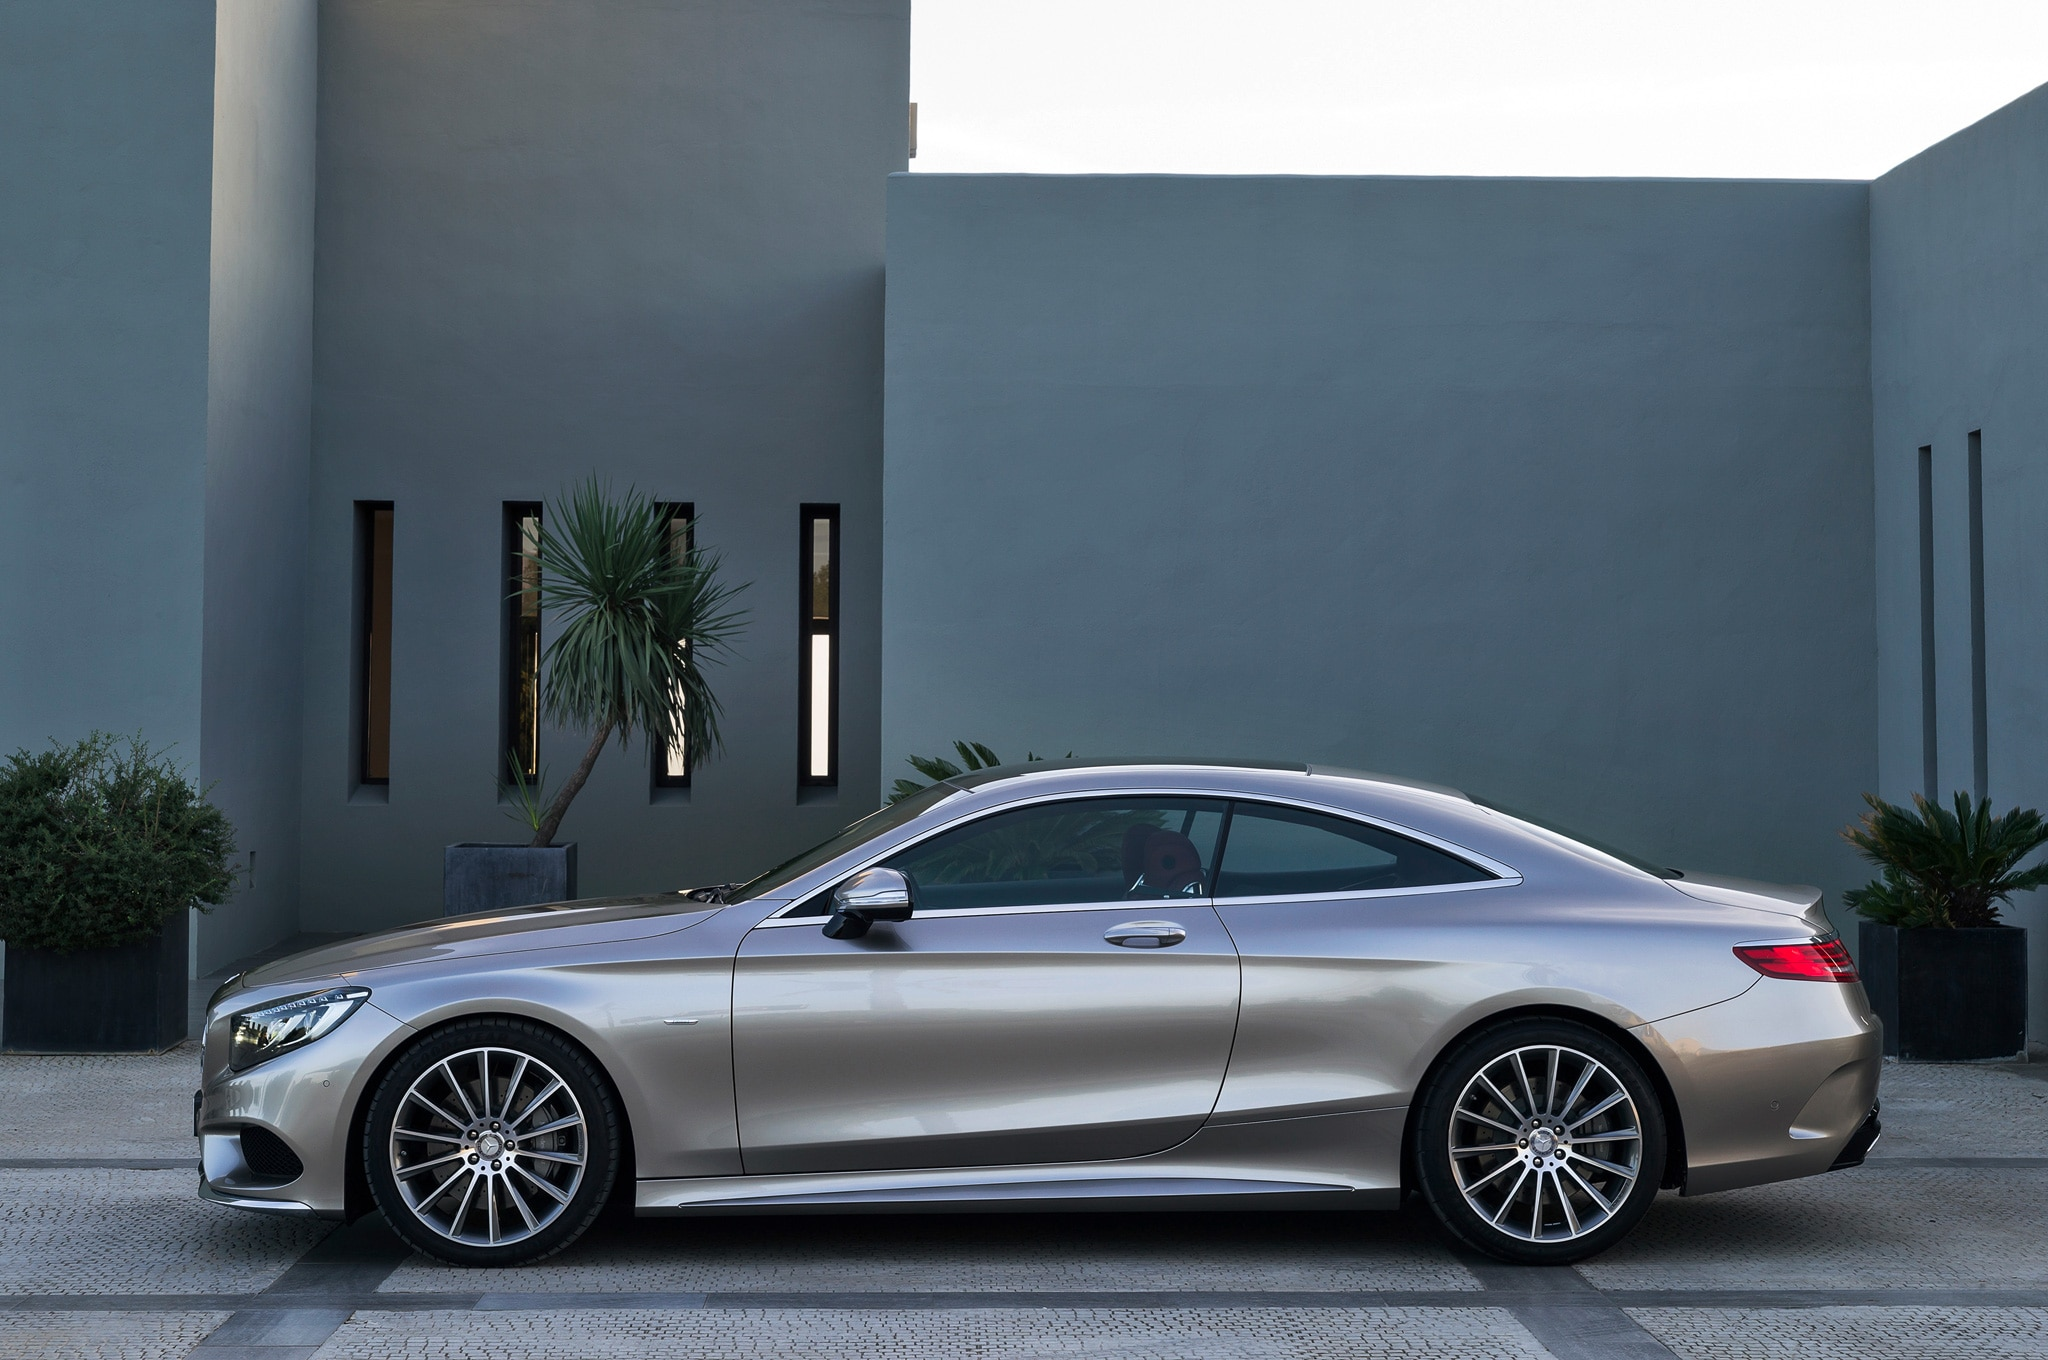 https://st.automobilemag.com/uploads/sites/11/2014/02/2015-Mercedes-Benz-S-Class-Coupe-side-view-and-house.jpg